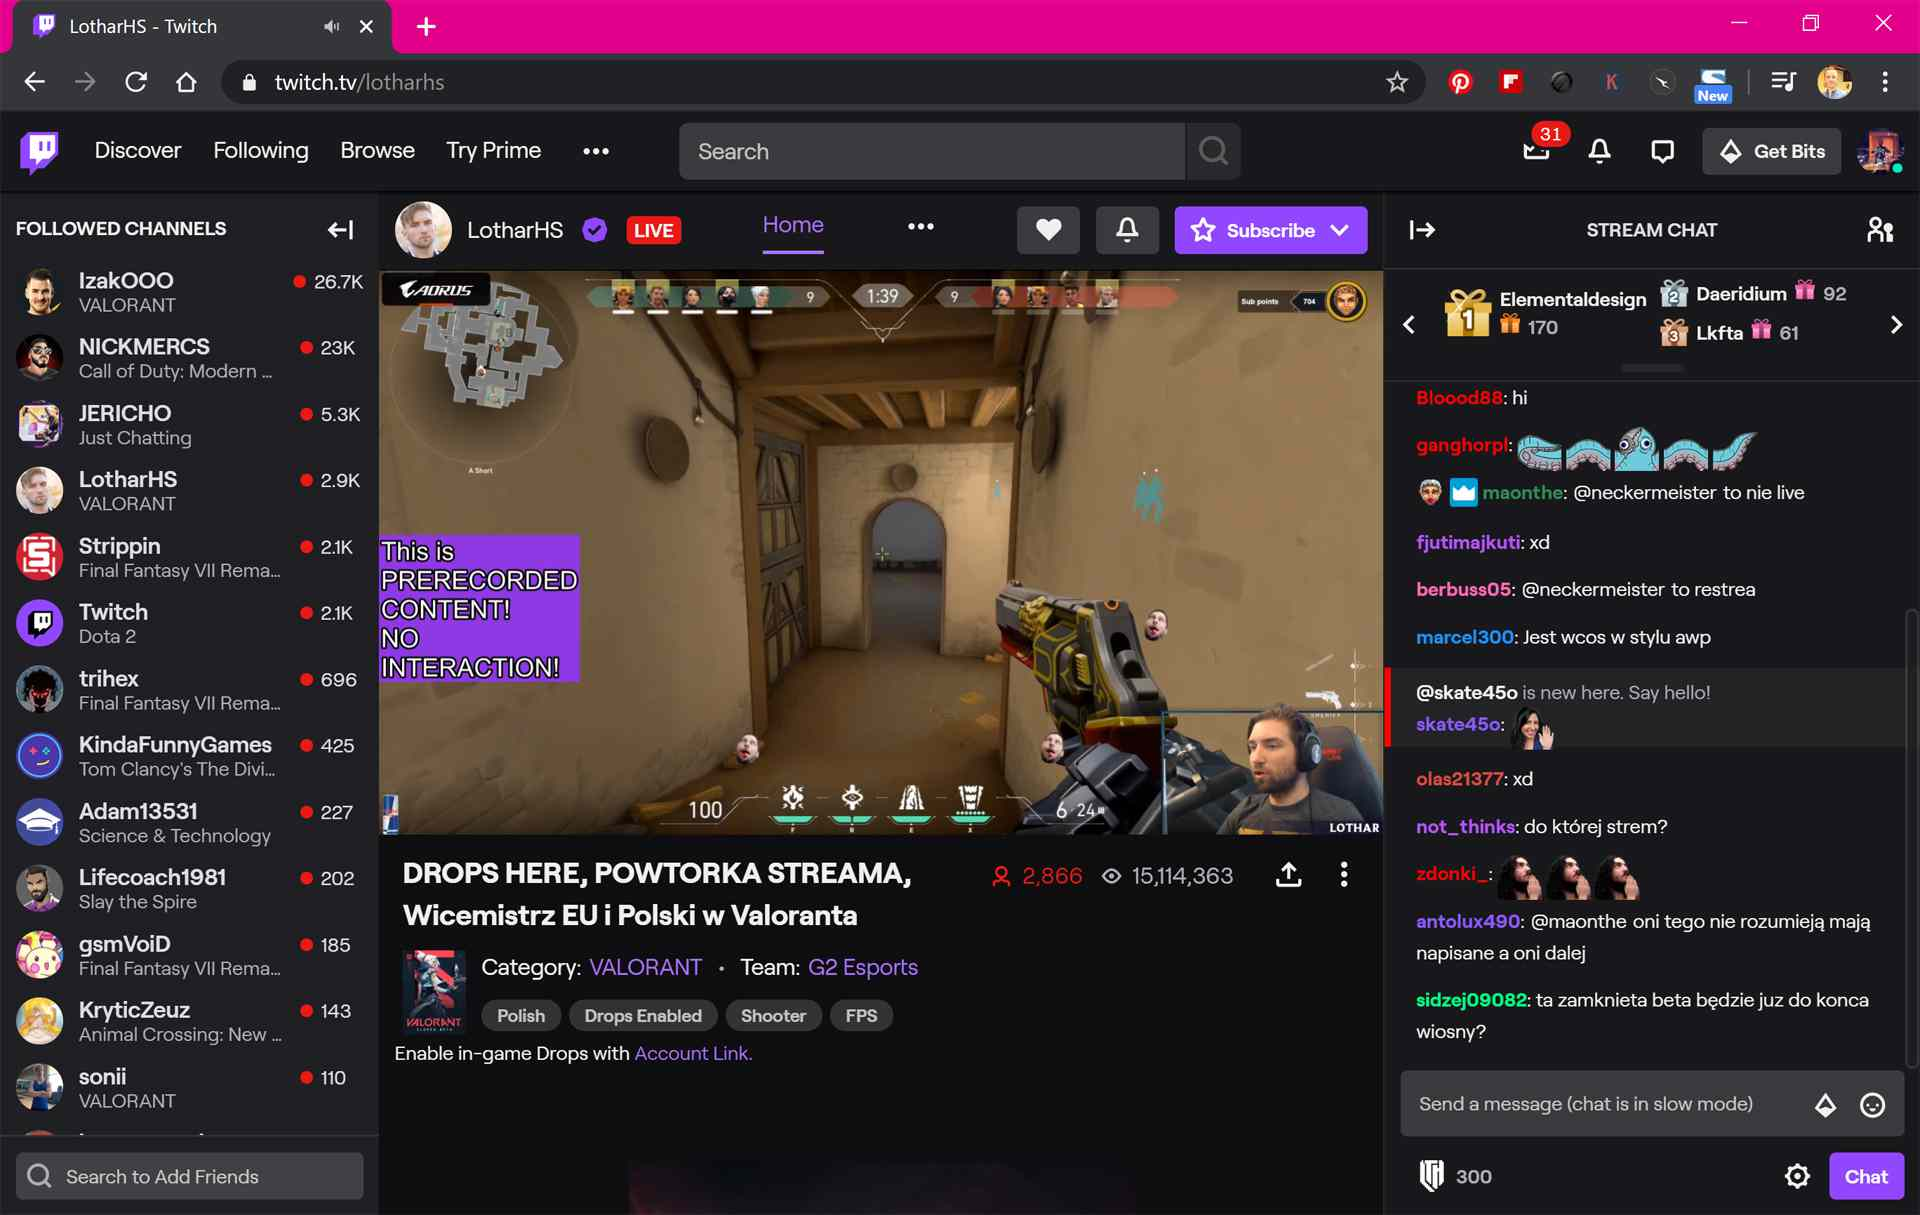 Twitch website in the Google Chrome web browser.